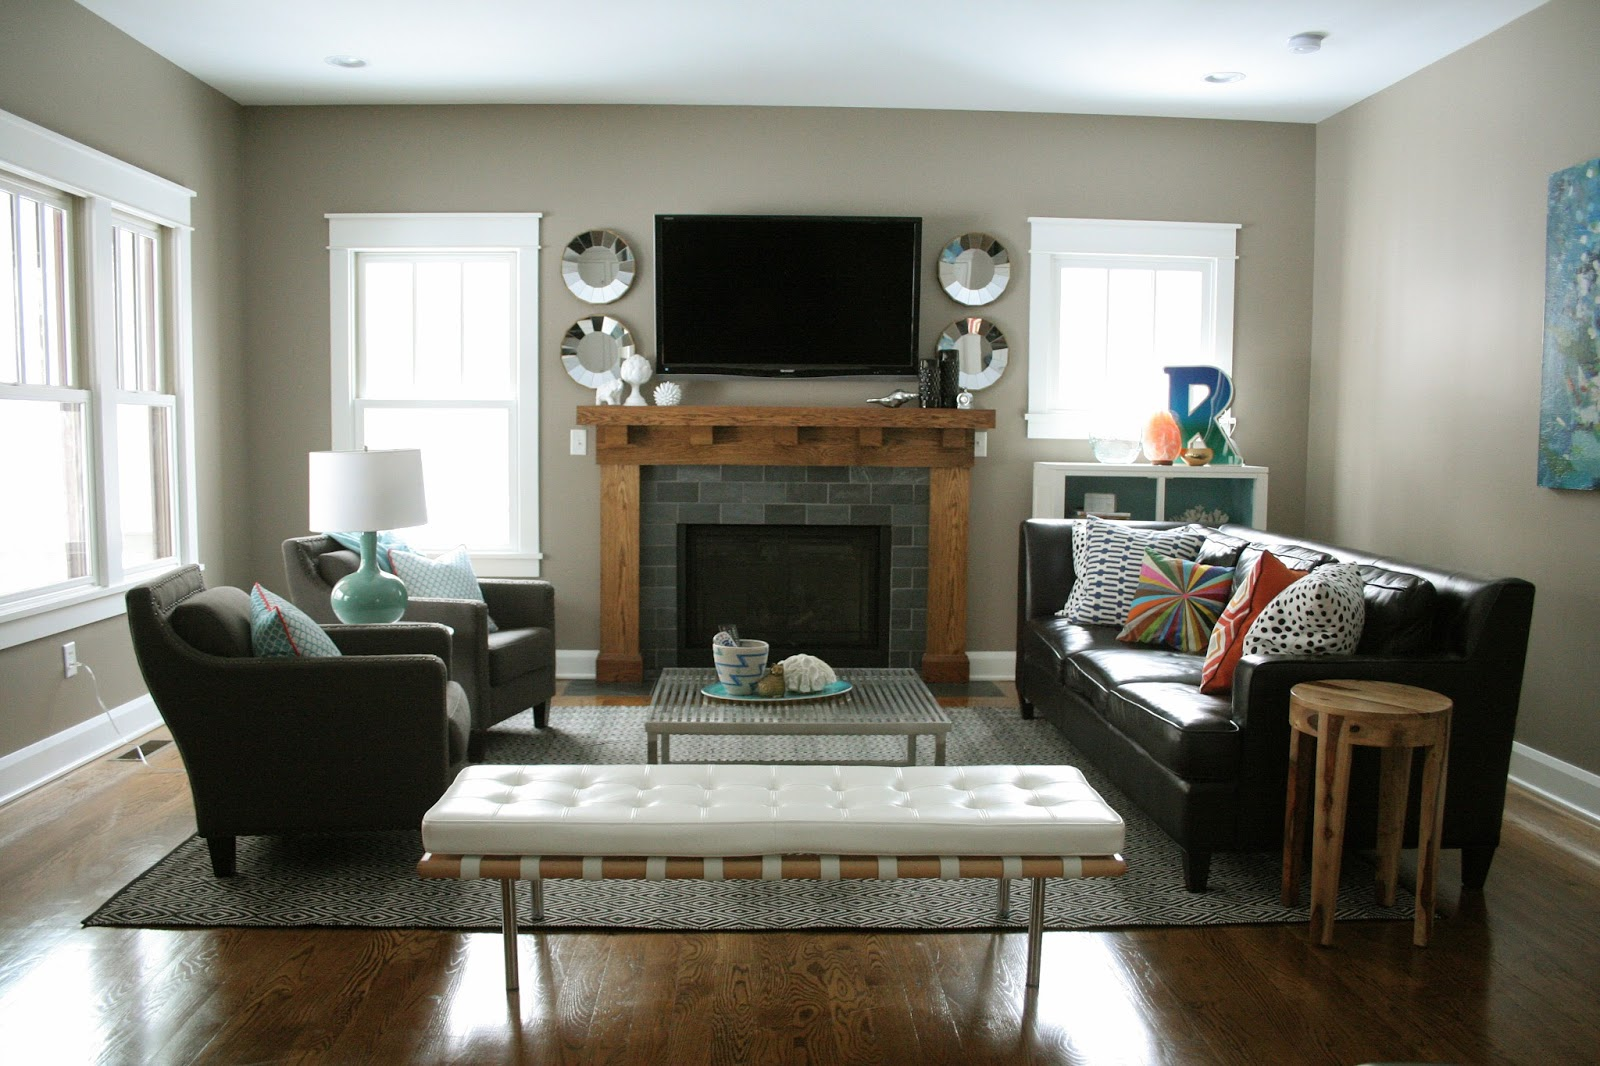 Ideas for arranging furniture in a small living room for Small living room arrangement